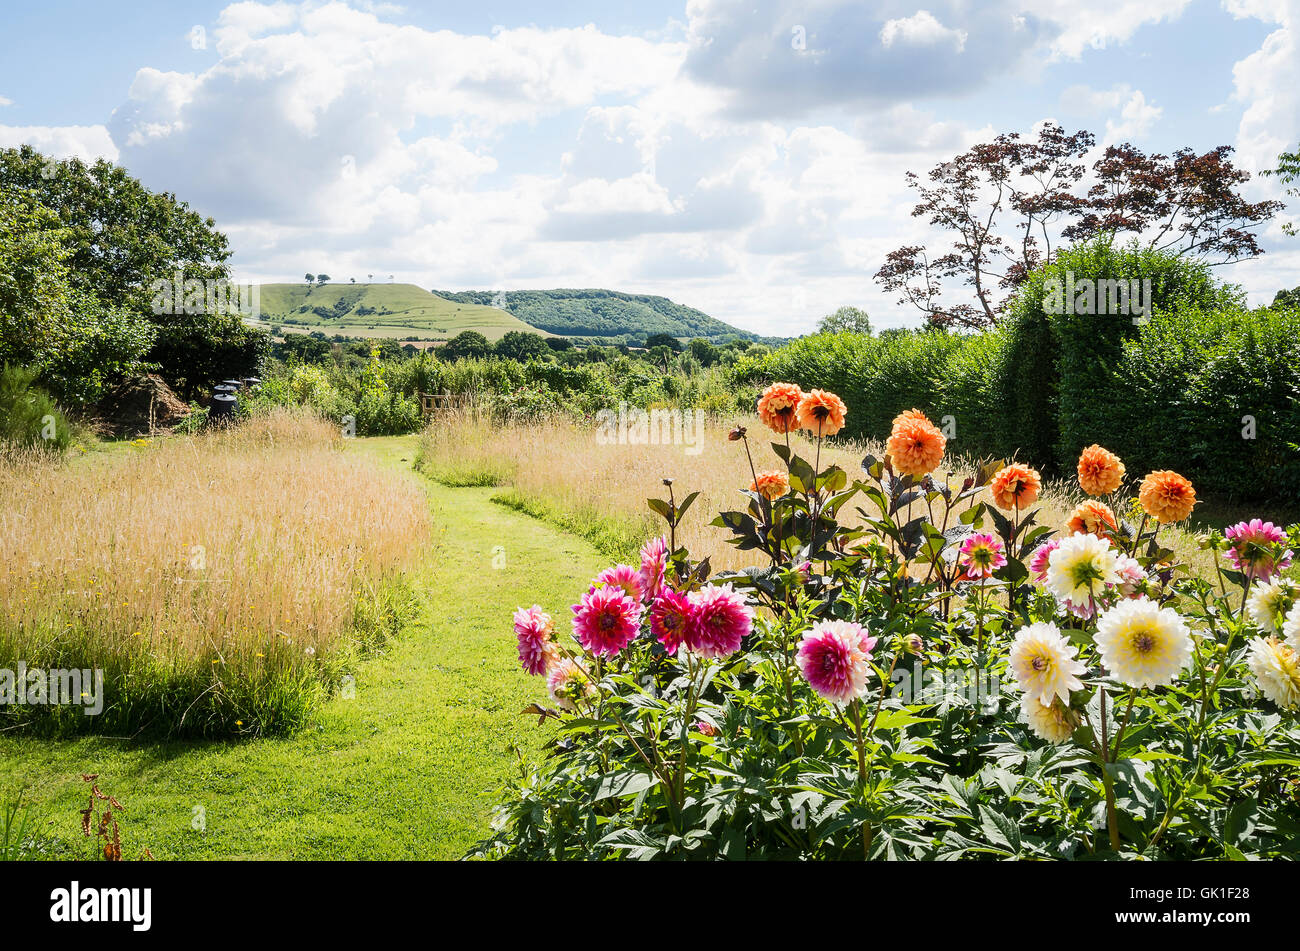 An country garden wwith dahlias and grass paths through flowering wild grasses - Stock Image